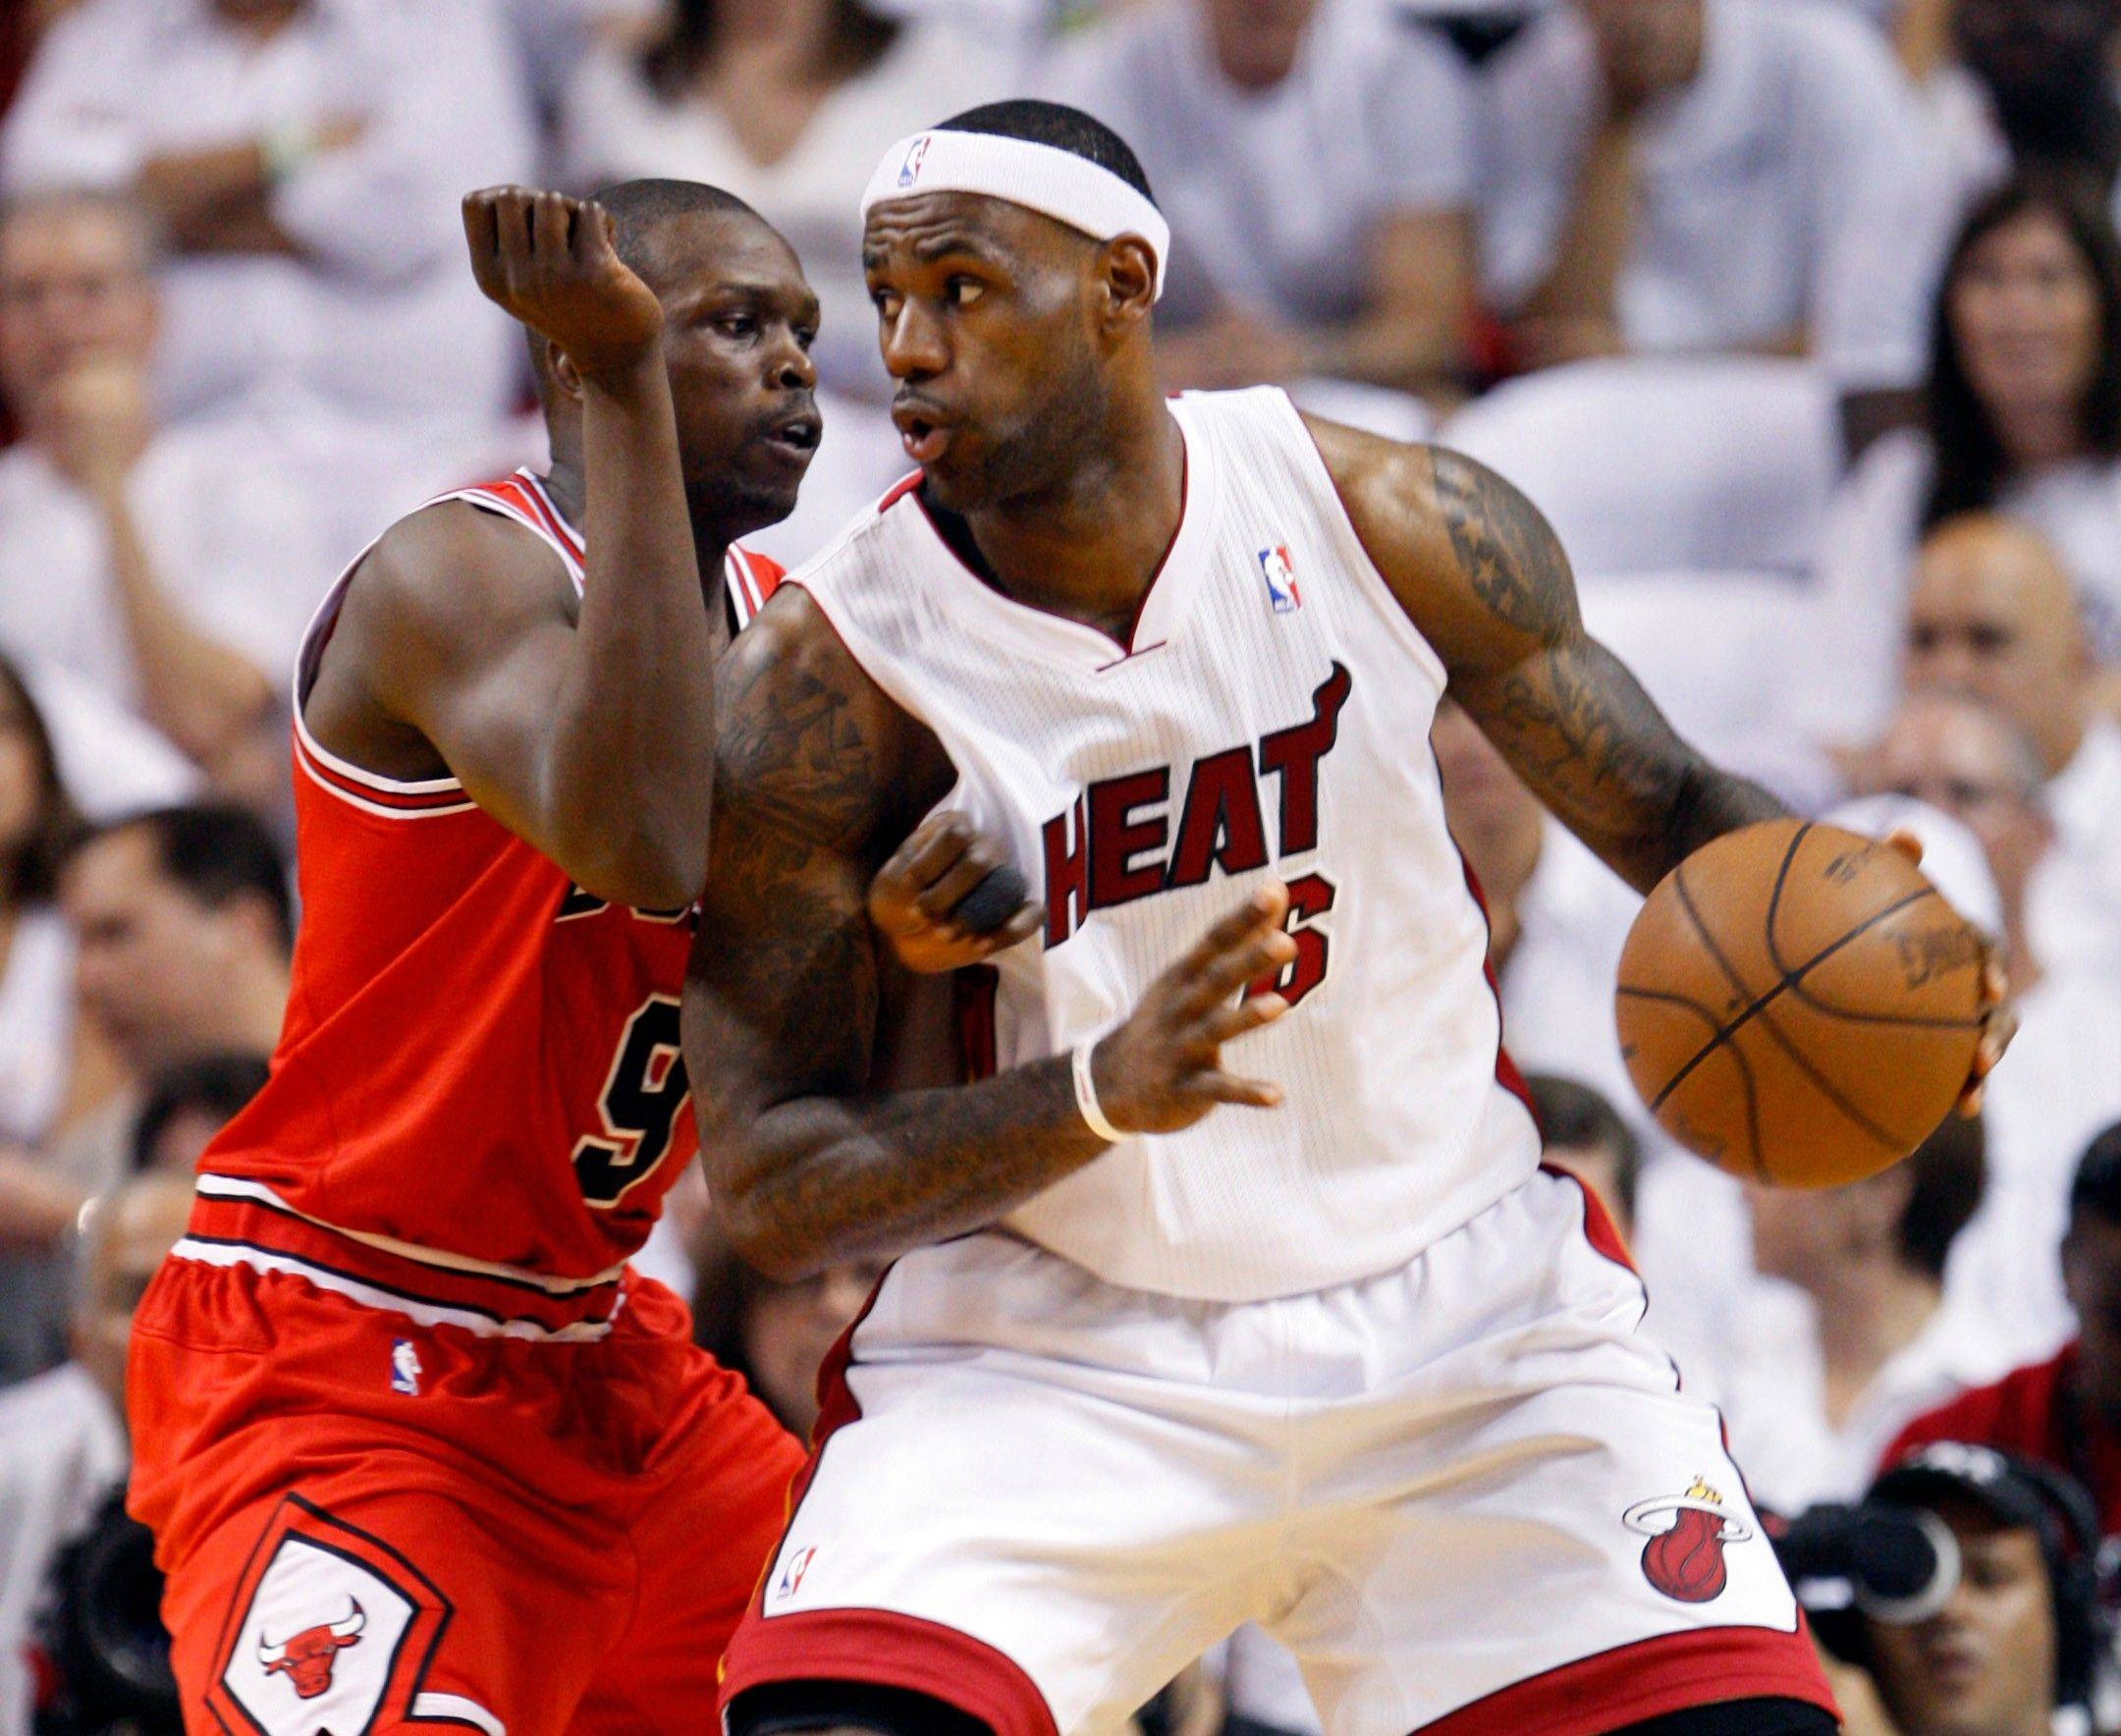 Miami's LeBron James backs down Luol Deng during Game 3 Sunday in Miami.